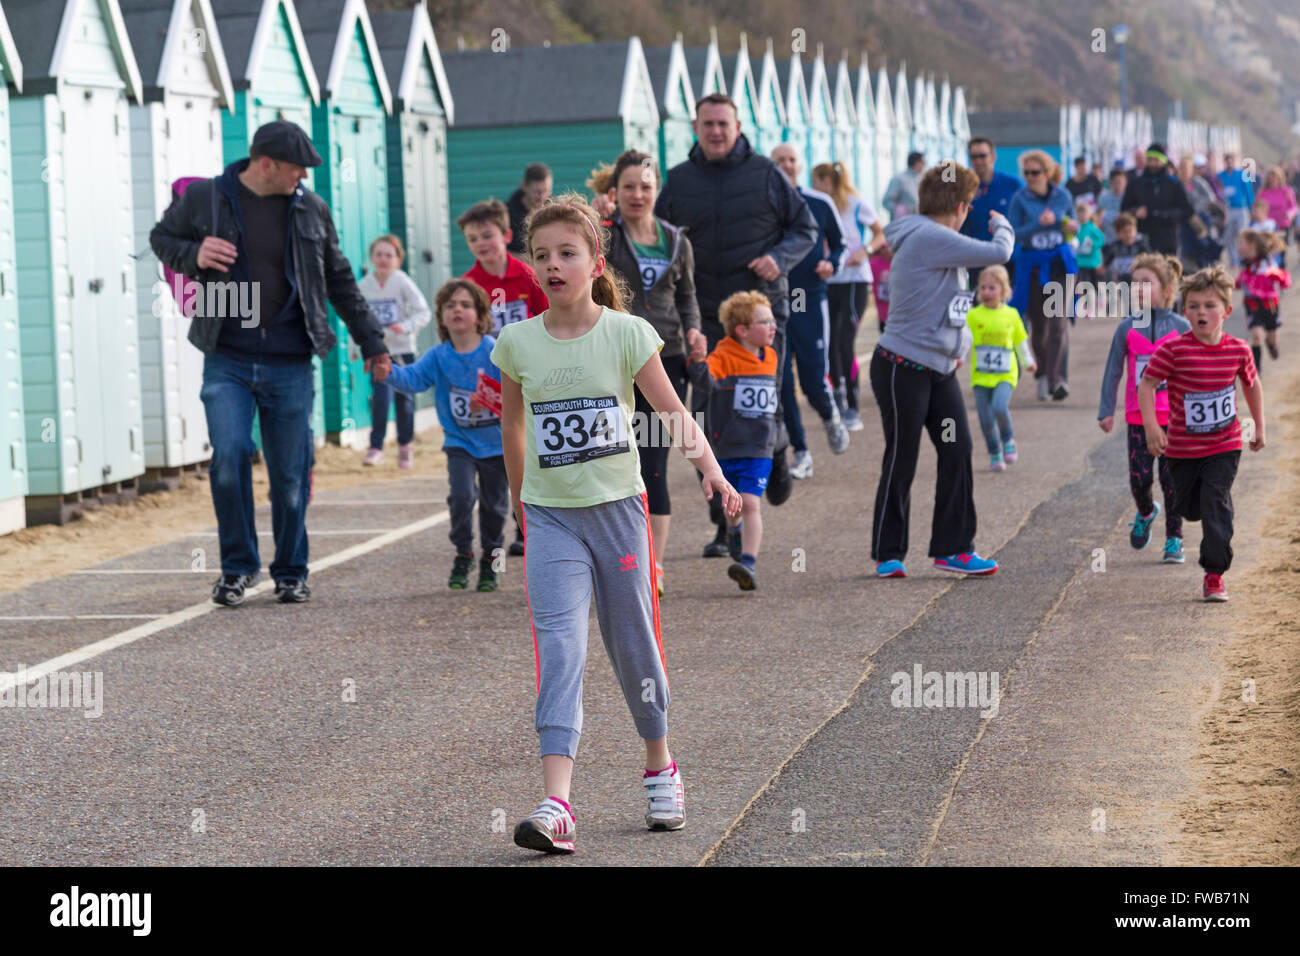 Bournemouth, UK 3 April 2016. Children taking part in the 1k children fun run/family friendly run, part of the Bournemouth - Stock Image